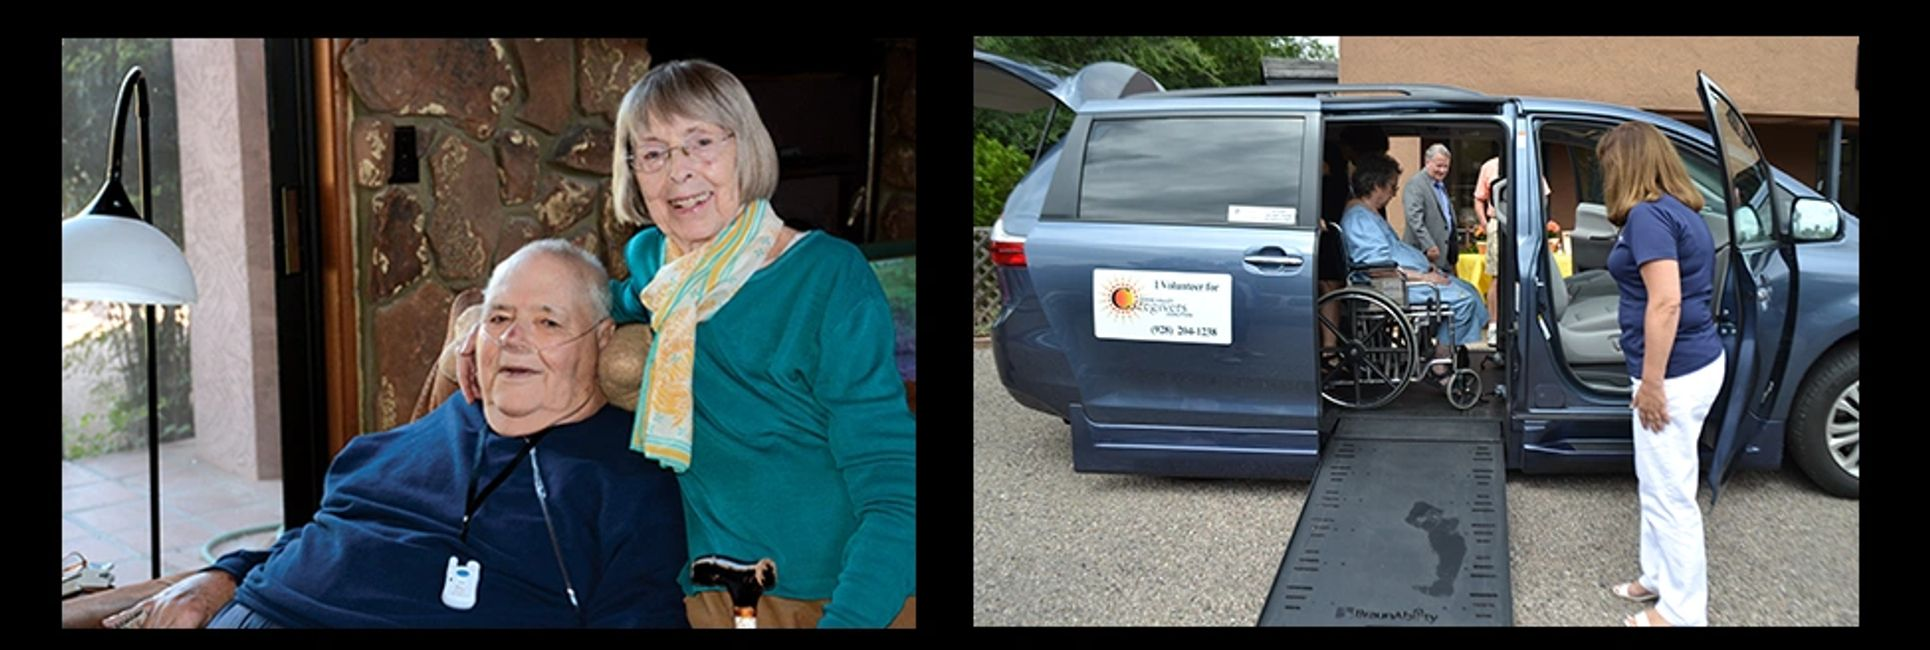 Left: Elderly couple with medical alert from VVCC. Right: Wheelchair accessible van.